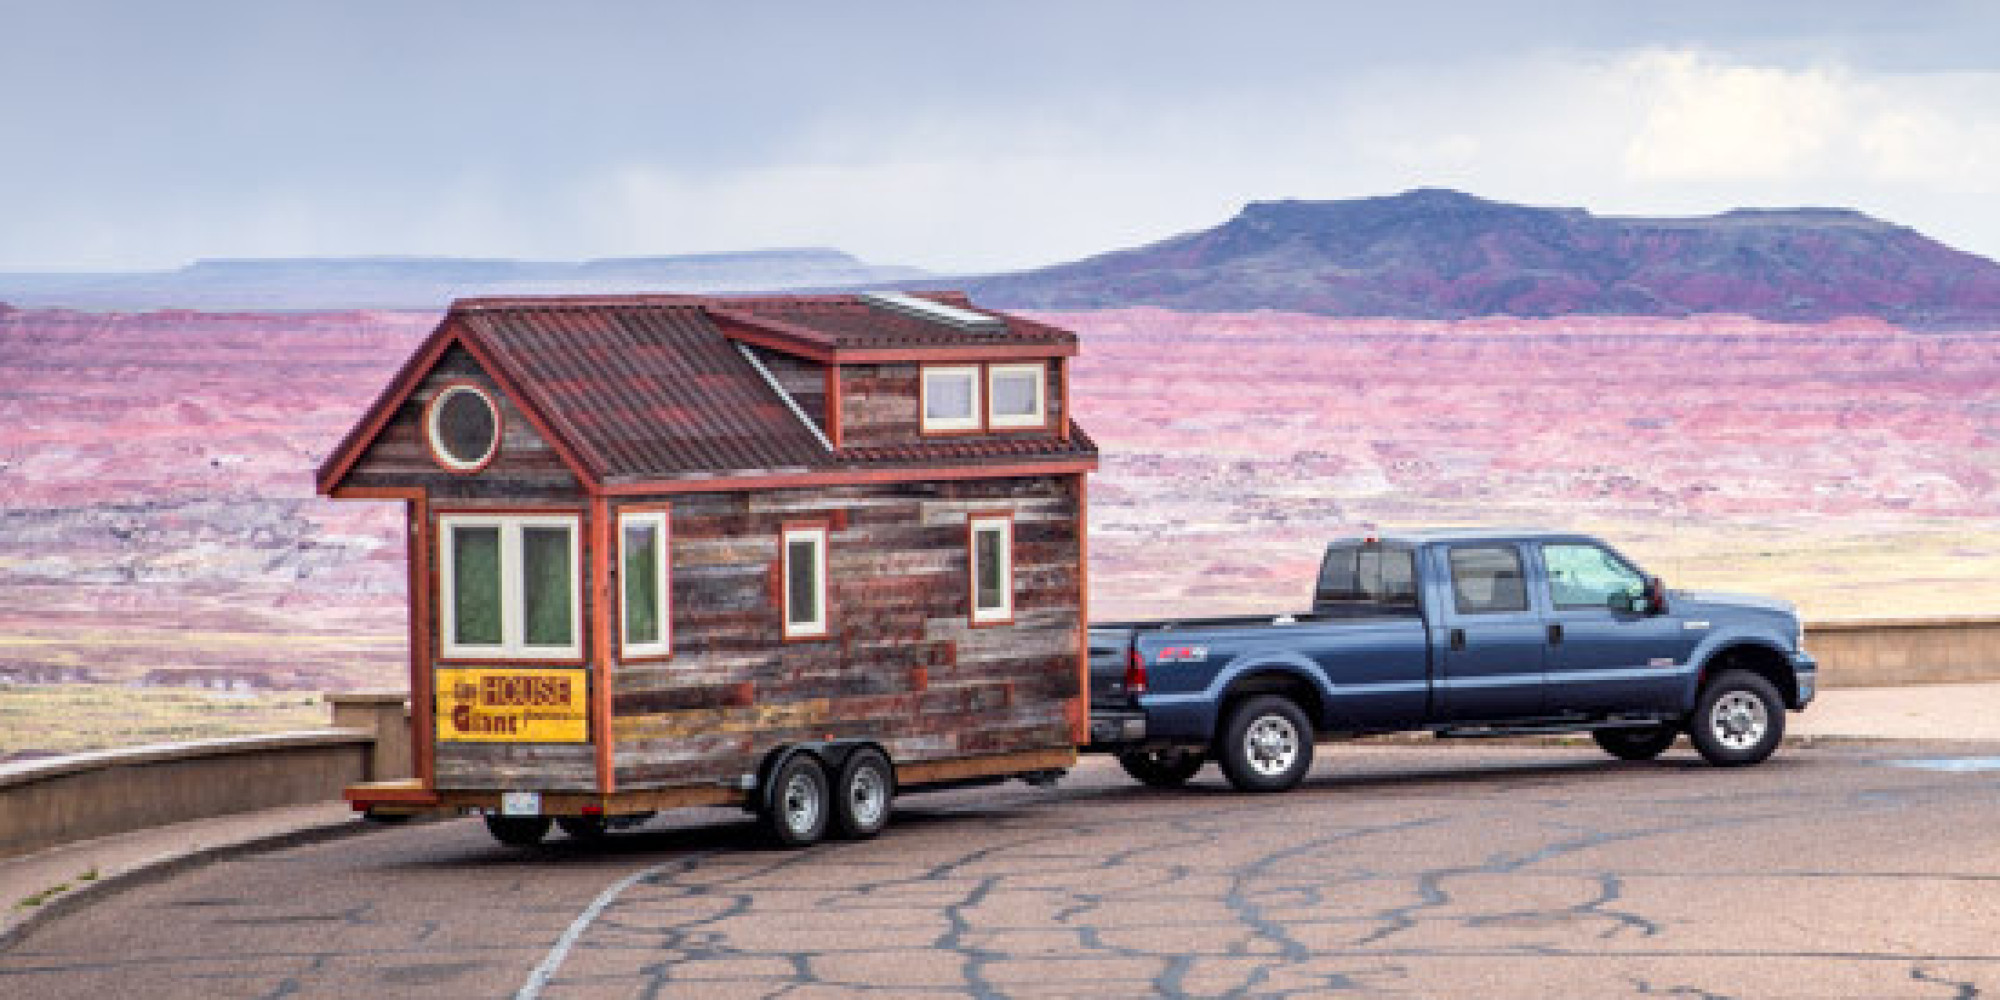 Surprising Couple Quits Day Jobs Builds Quaint Tiny Home On Wheels To Largest Home Design Picture Inspirations Pitcheantrous